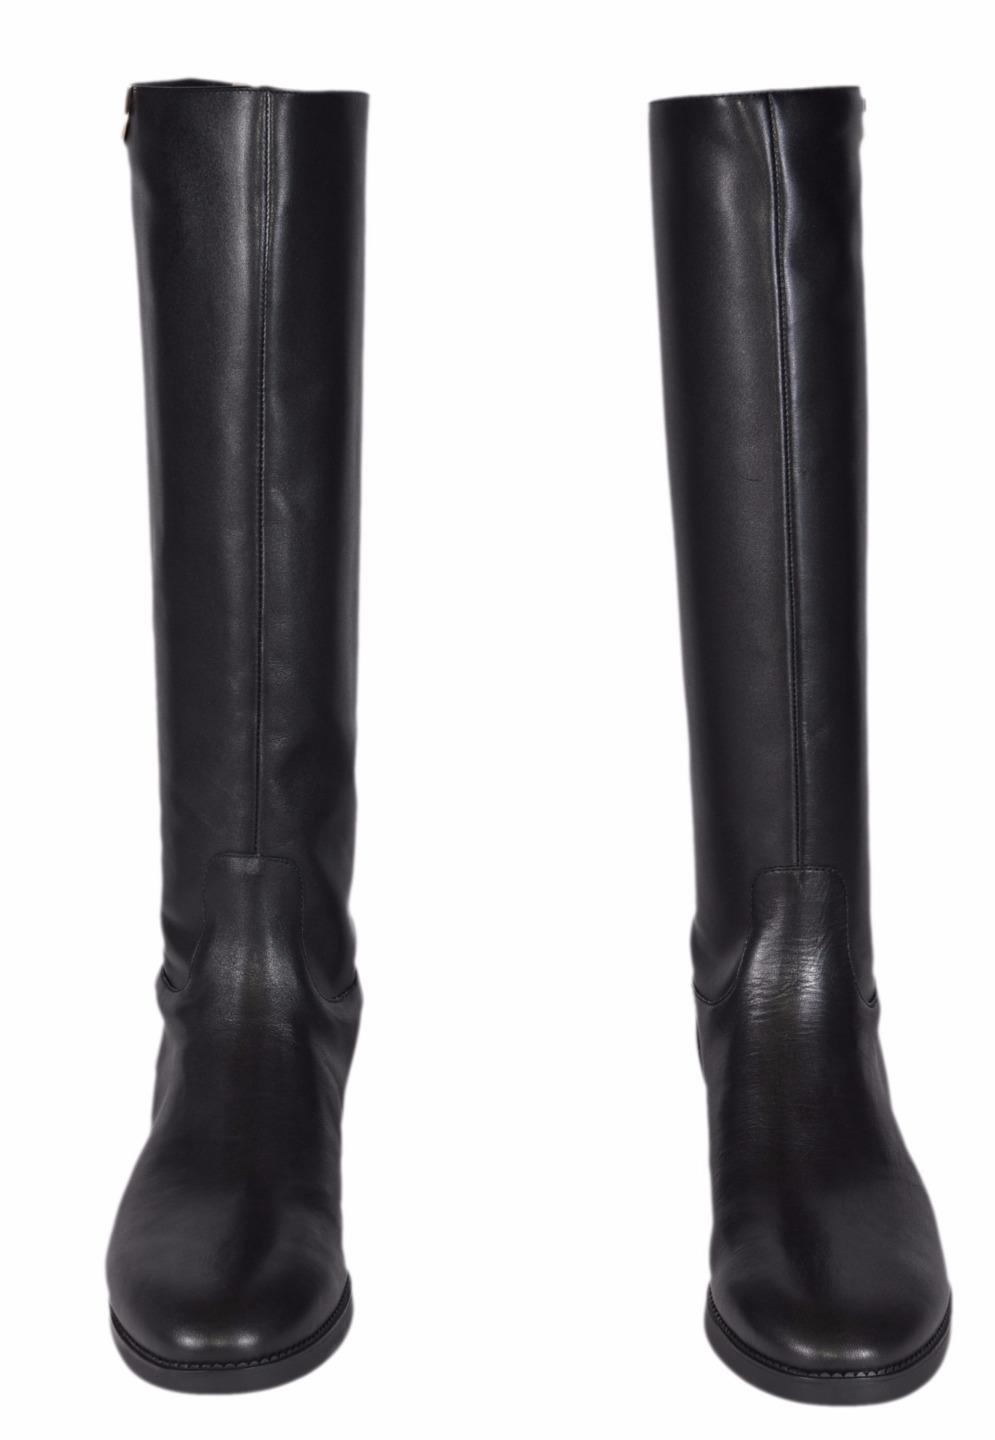 3abbaa91e40 ... Men s Women s-Tory Burch Black New New New Vegetable Leather Sidney  Knee High Riding ...